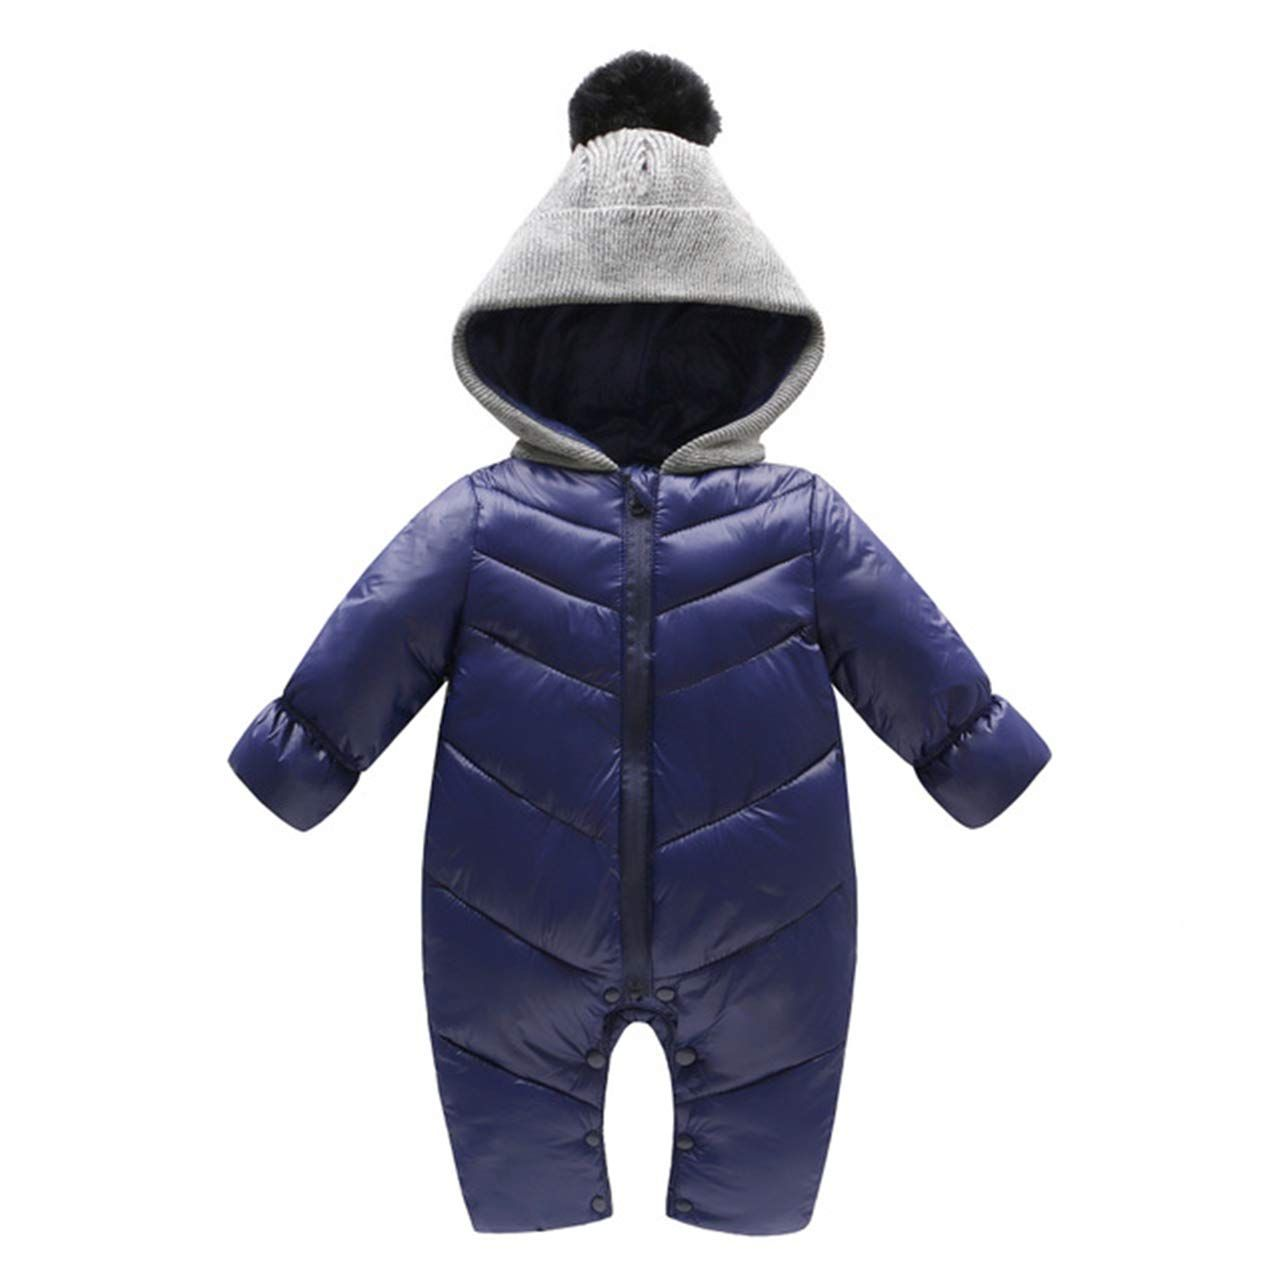 6cf3d735e Baby Girls Boys Toddler All in One Snowsuit Romper Zipper Warm Hooded Coat Baby  Winter Thick Jumpsuit 612 Months ** Click image to review more information.